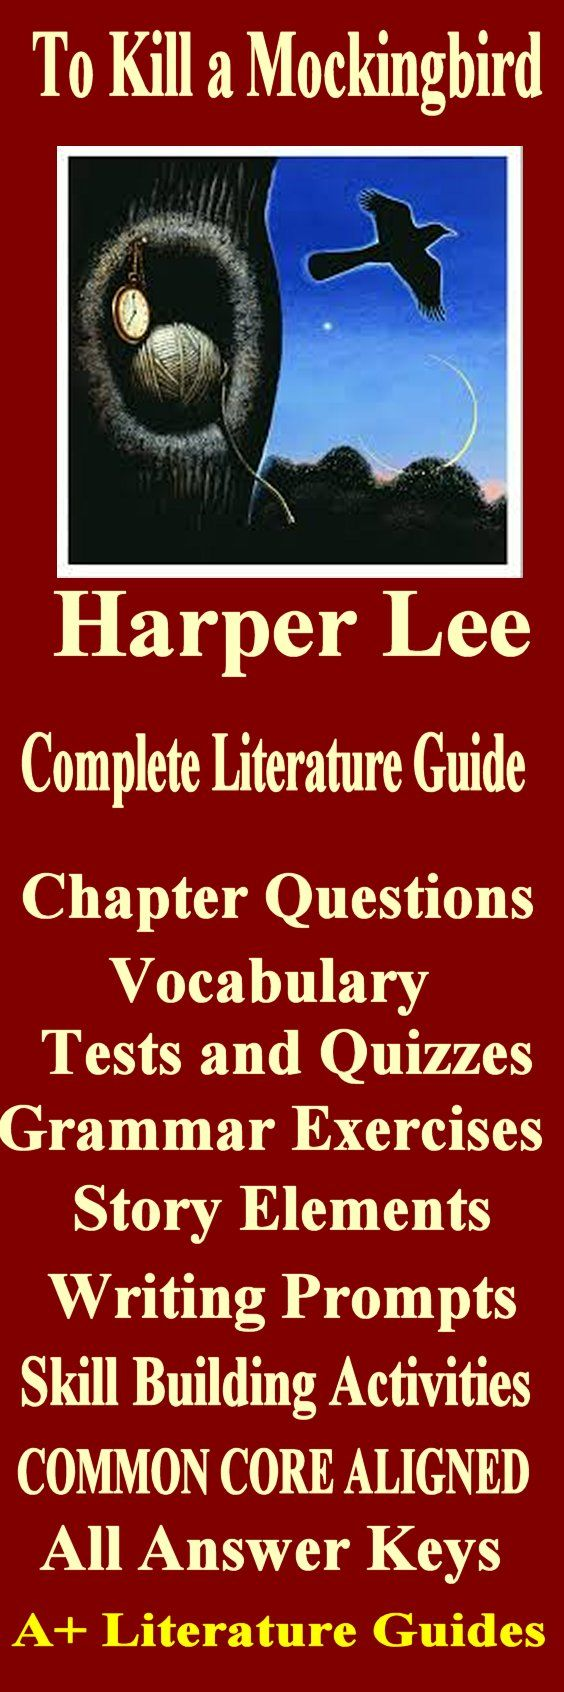 To Kill a Mockingbird: Literary Analysis Elizabeth Capron